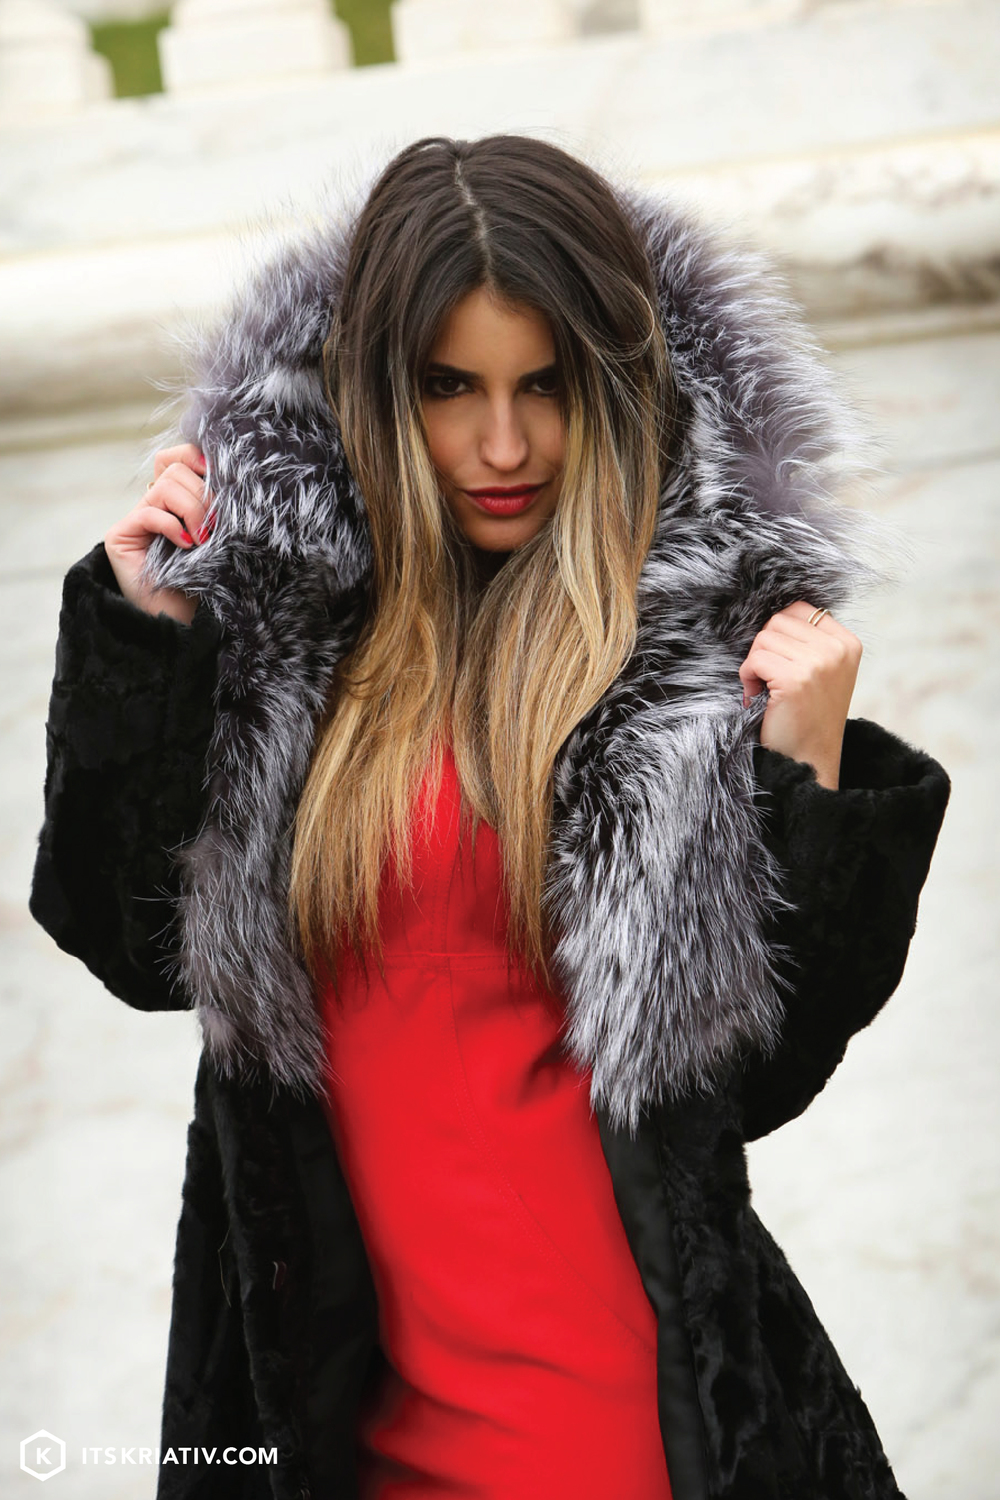 ItsKriativ_Fashion_Fur_Real-06.jpg